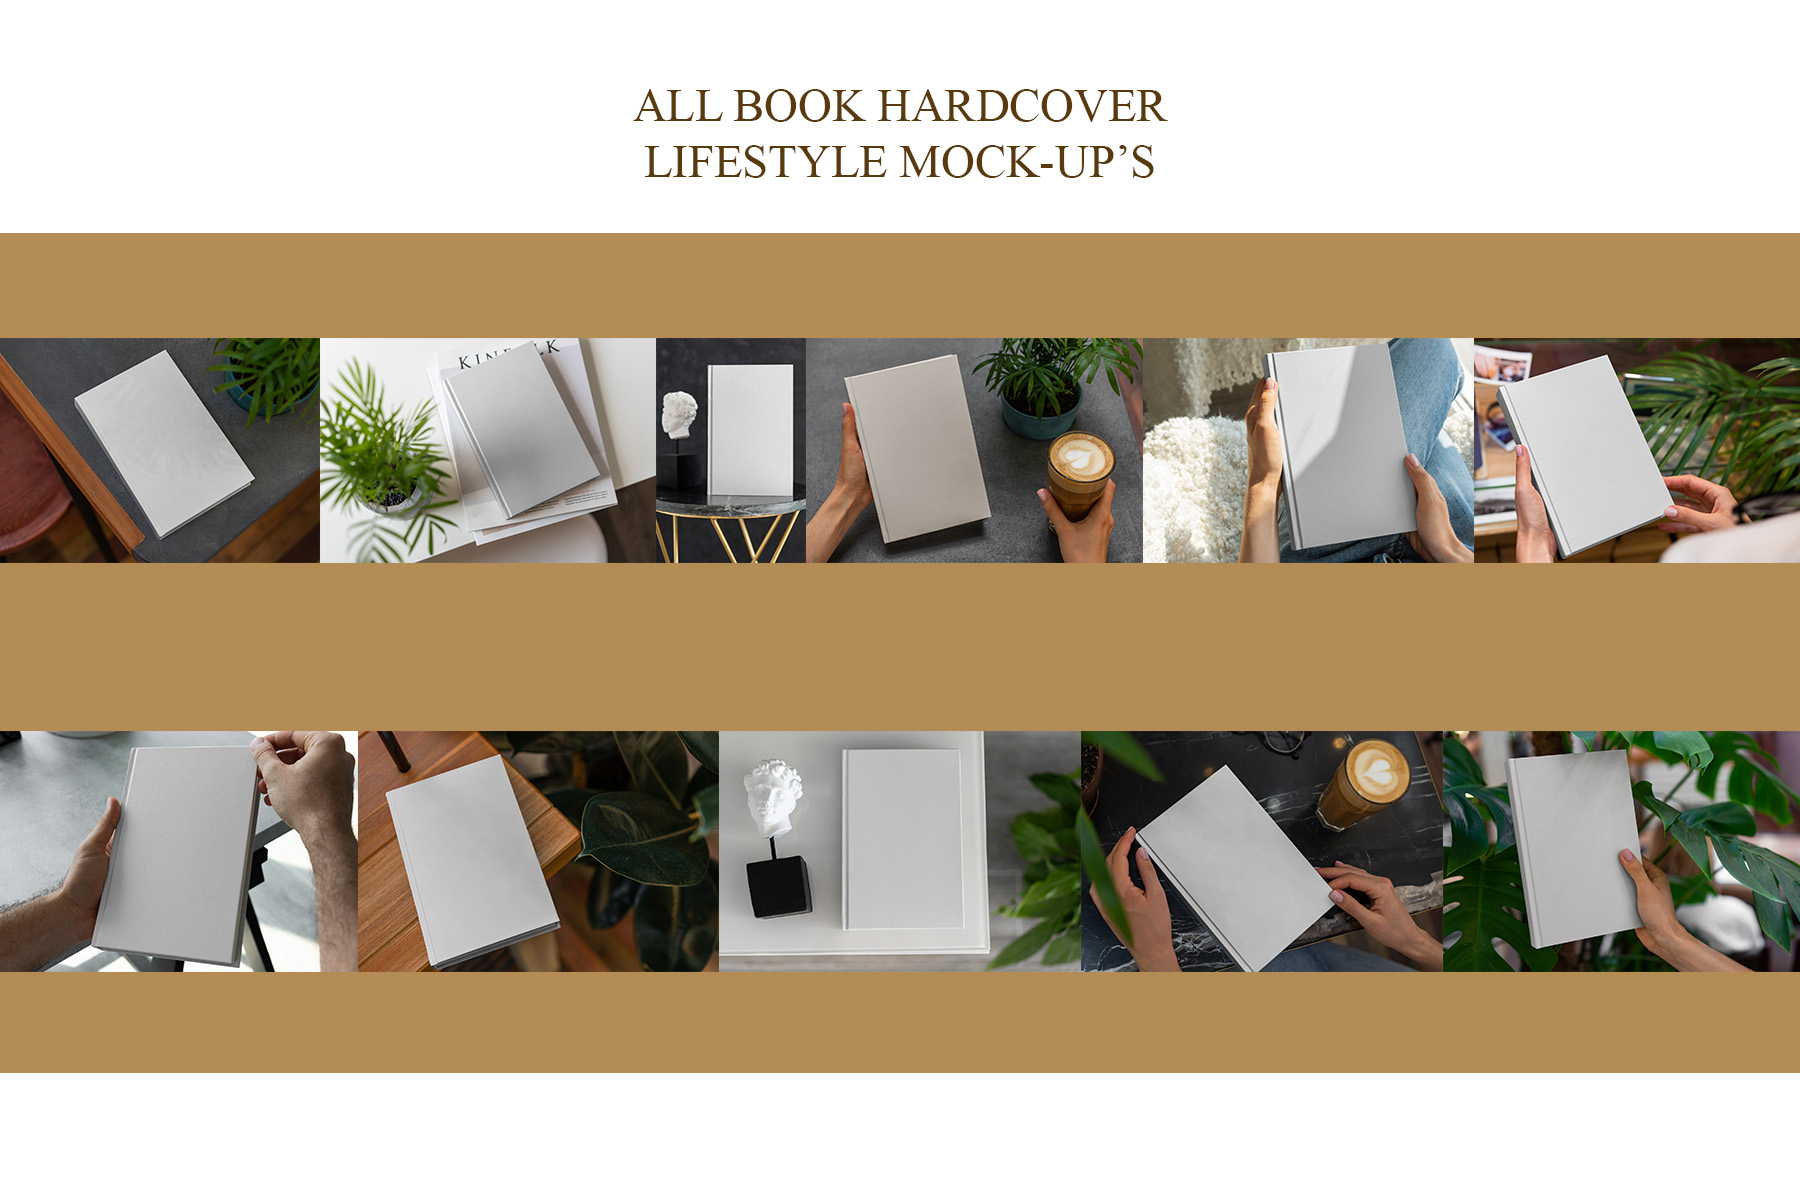 Book Hardcover Lifestyle Mock-Up